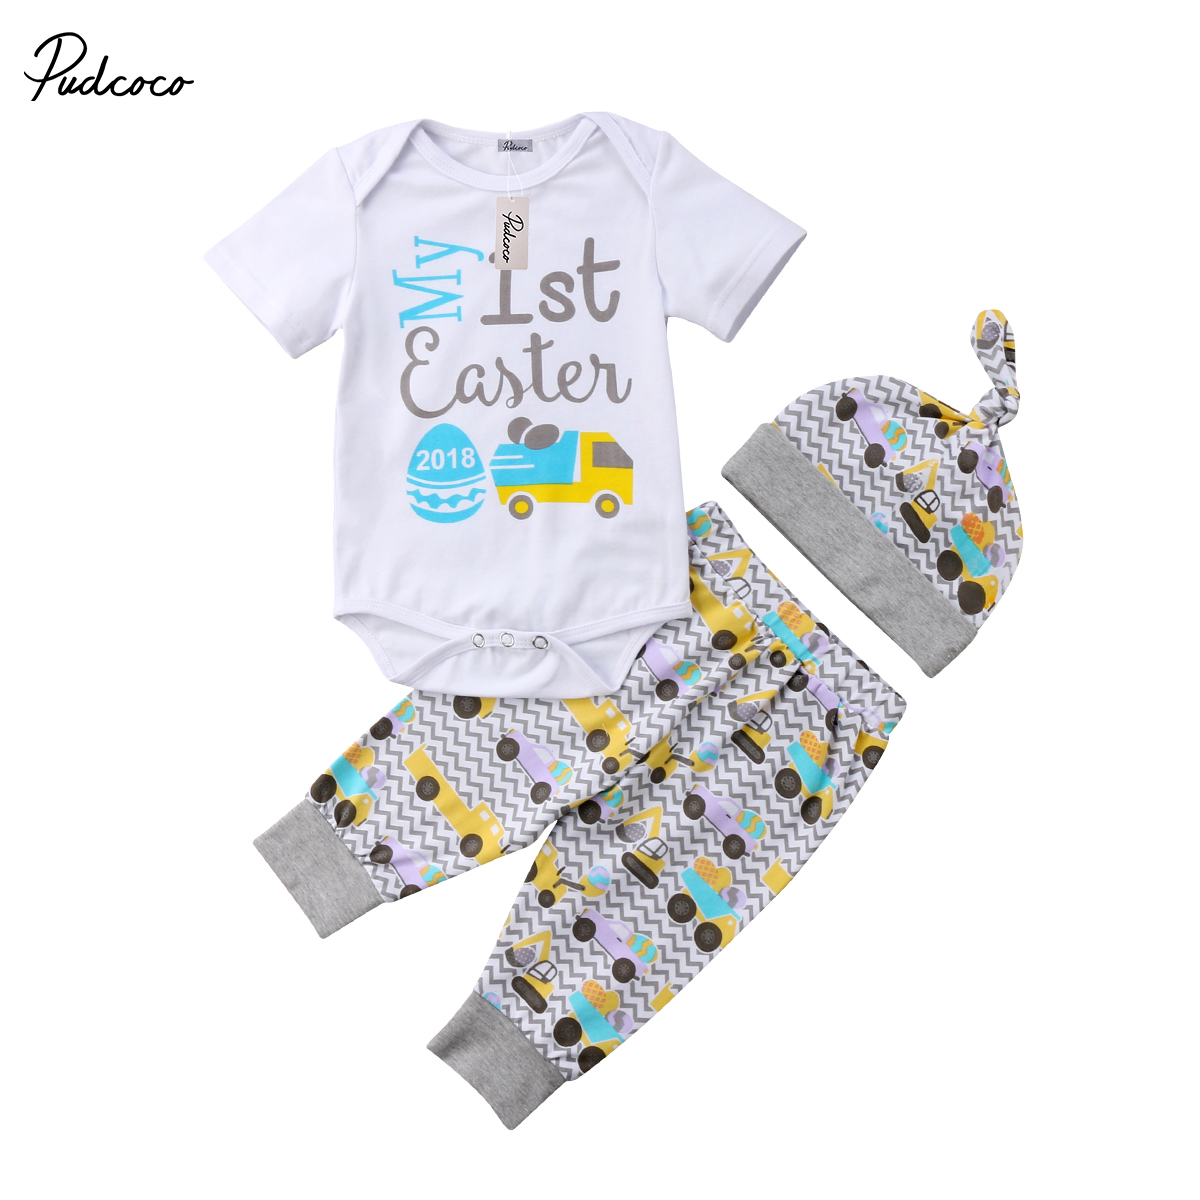 2018 Brand New Baby Easter Outfits Newborn Infant Toddler Boy Girl Romper Pants Hat 3Pcs Set Short Sleeve Clothes Easter Outfits 3pcs set newborn infant baby boy girl clothes 2017 summer short sleeve leopard floral romper bodysuit headband shoes outfits